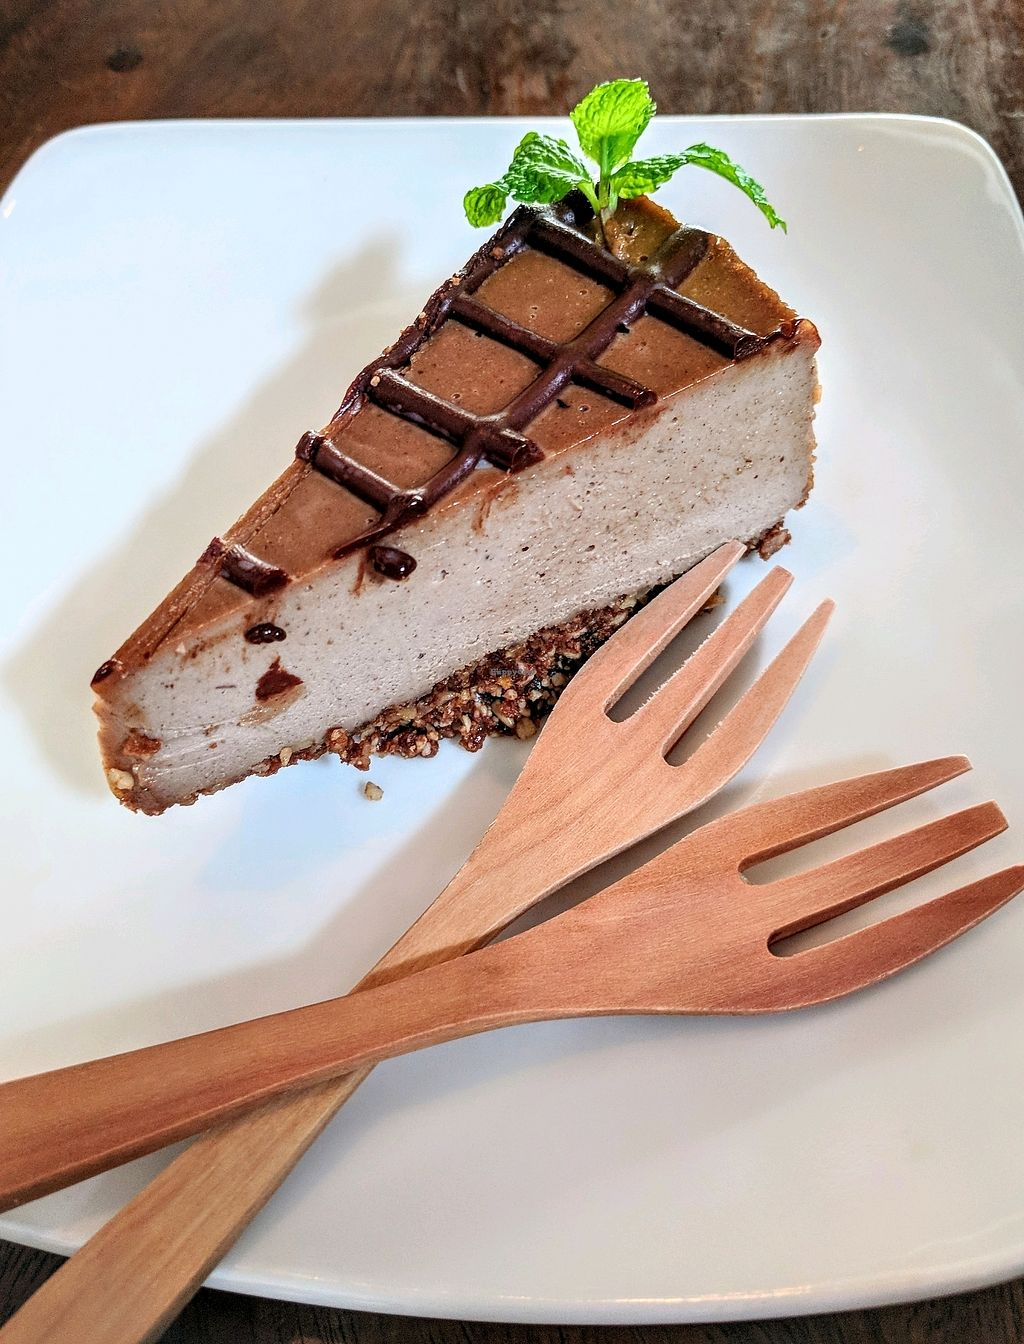 """Photo of The Seeds of Life  by <a href=""""/members/profile/EdanChapman"""">EdanChapman</a> <br/>Mocha cheesecake. Orgasmic <br/> November 17, 2017  - <a href='/contact/abuse/image/47407/326366'>Report</a>"""